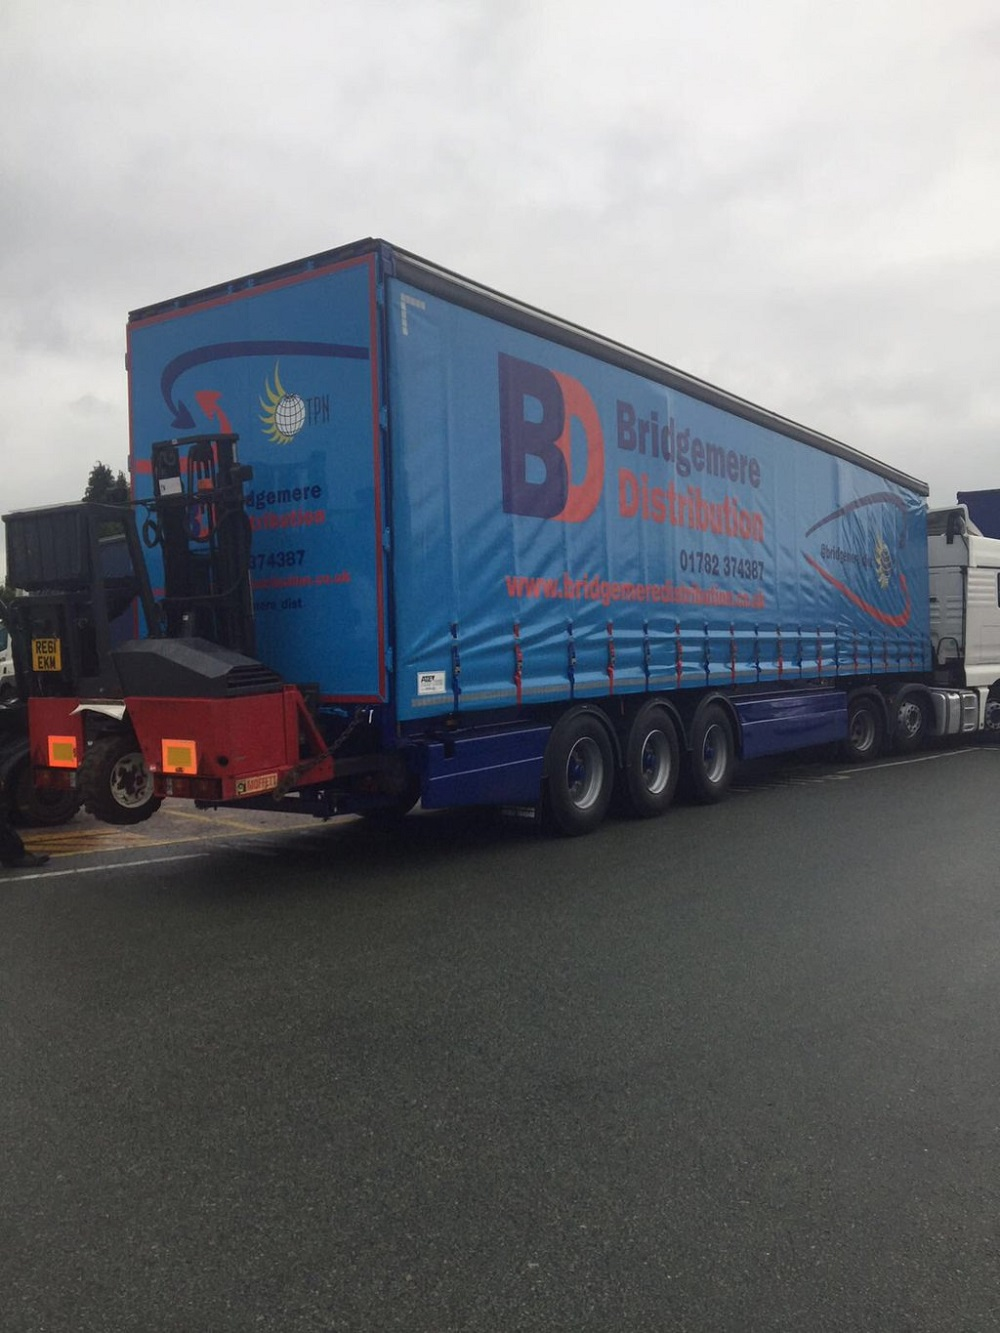 Bridgemere Distribution,